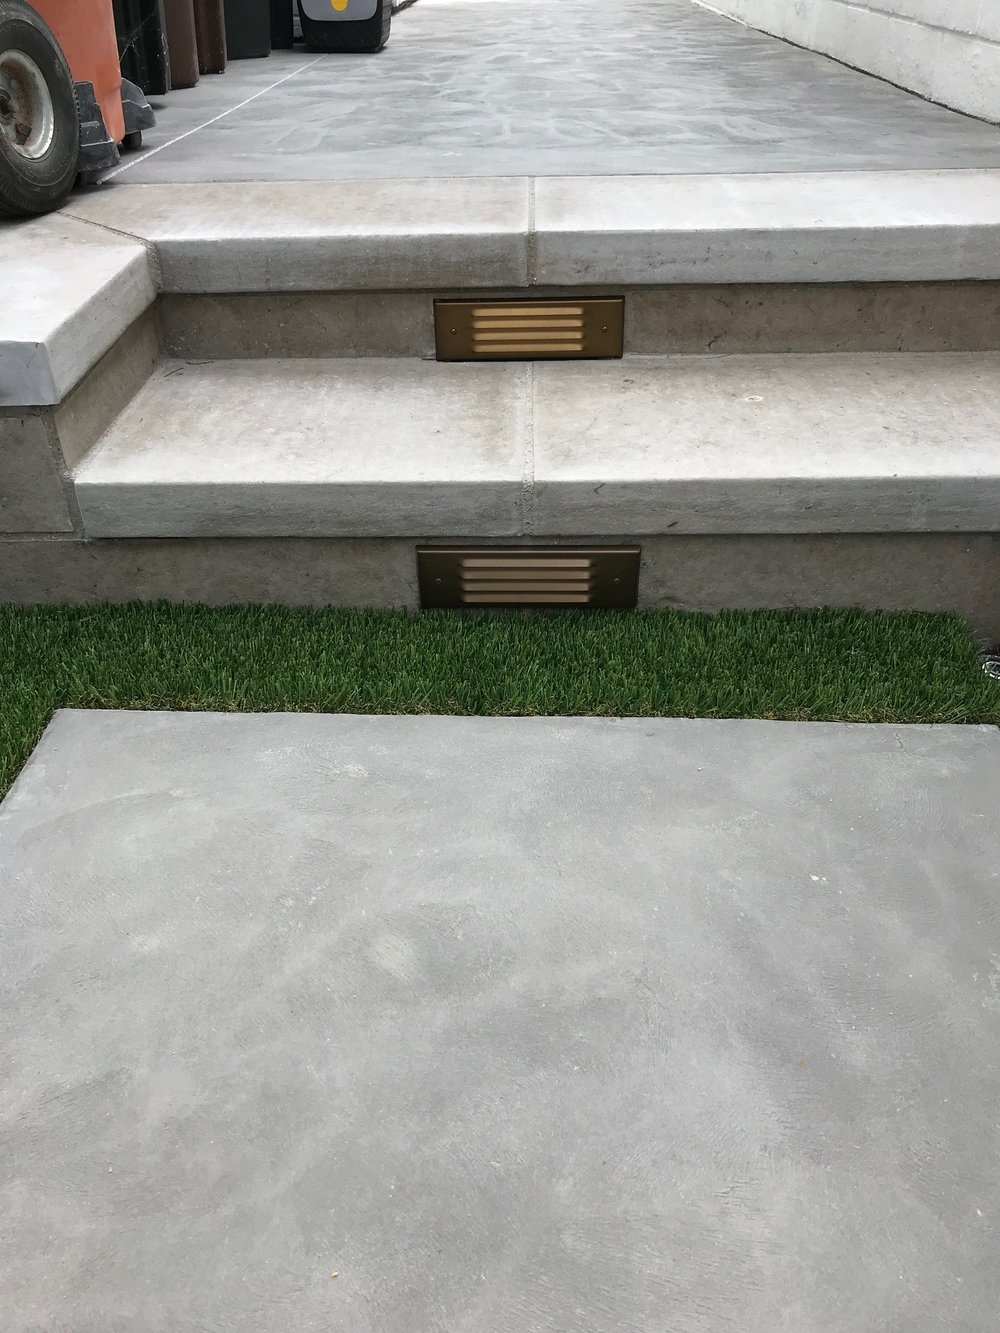 Concrete steps built after excavation work in Dana Point